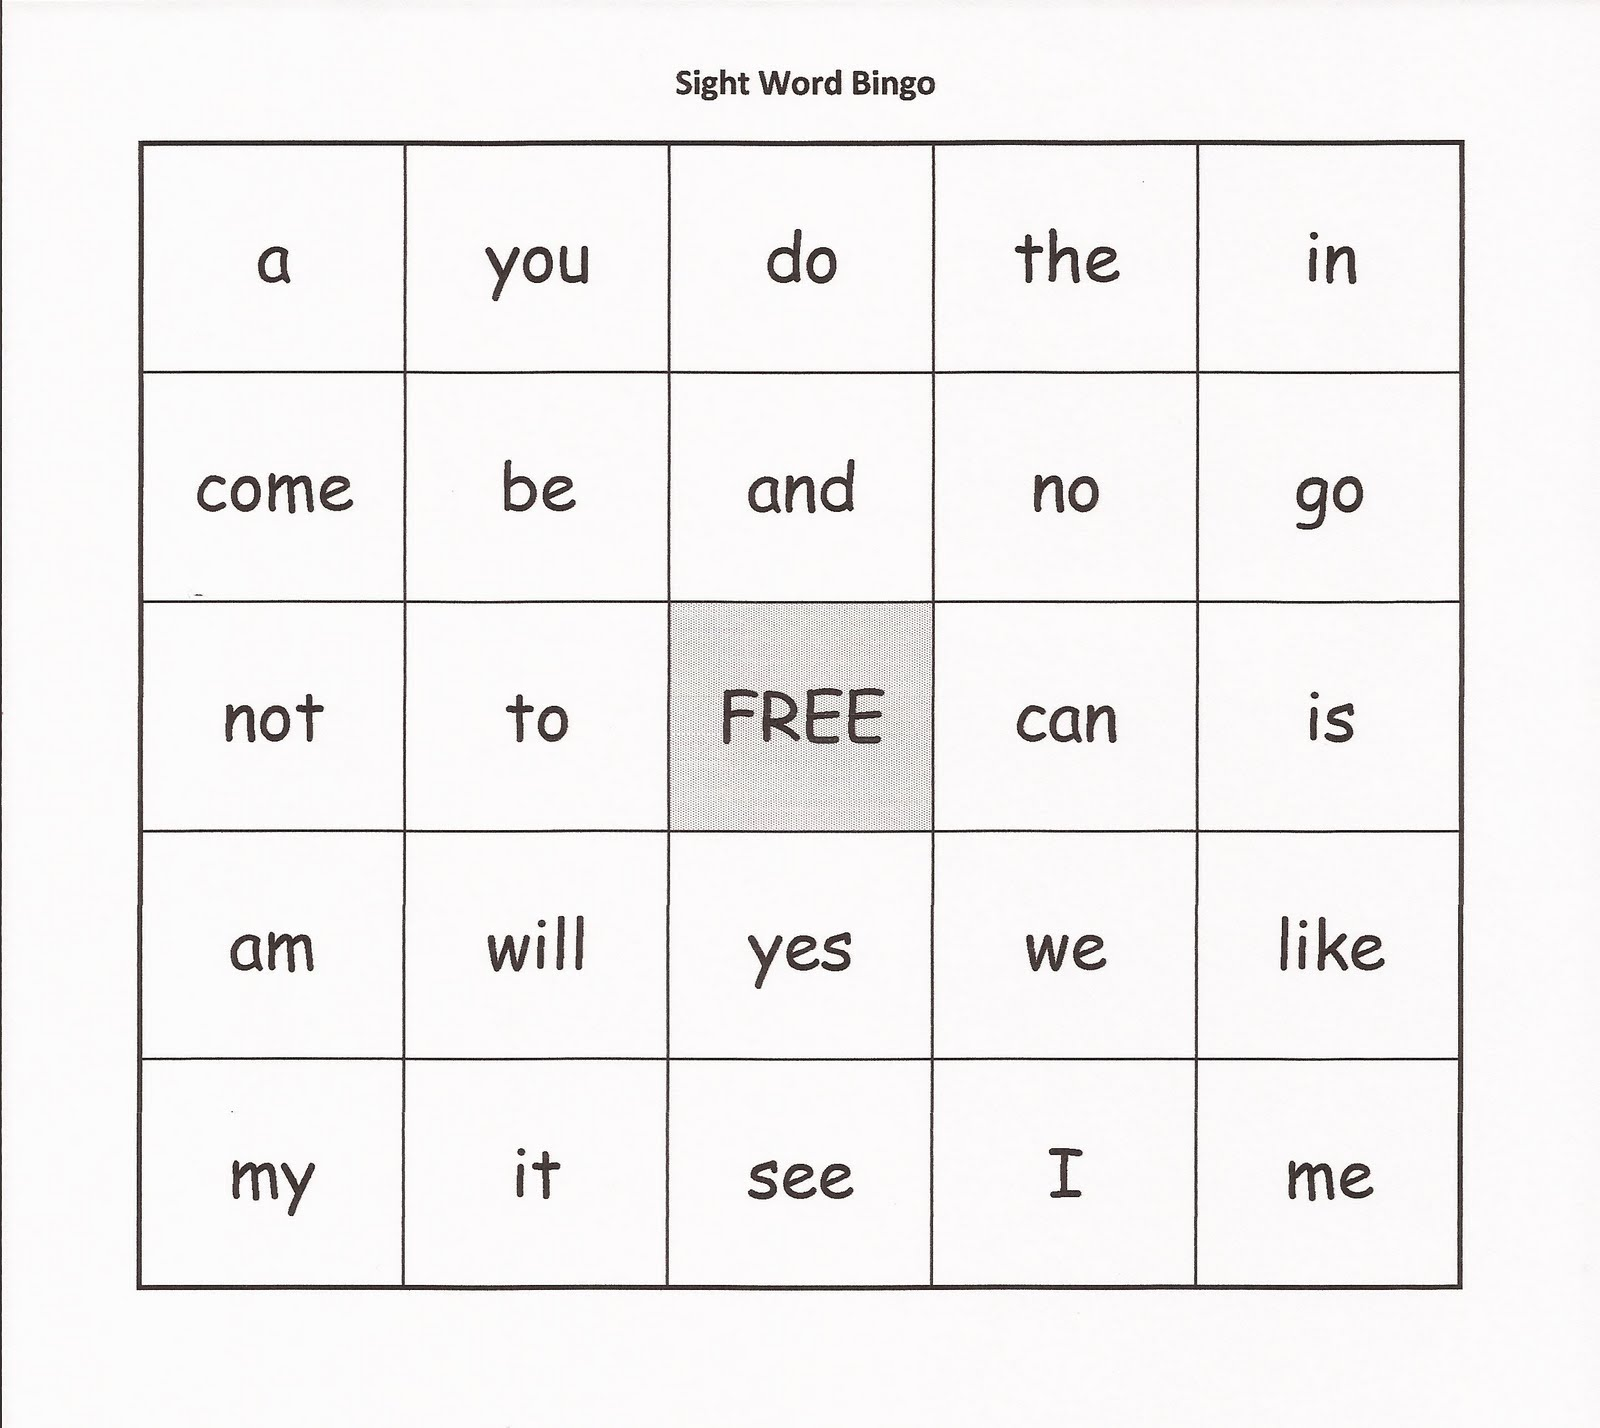 for  word homework sight Sight Word Bingo activities